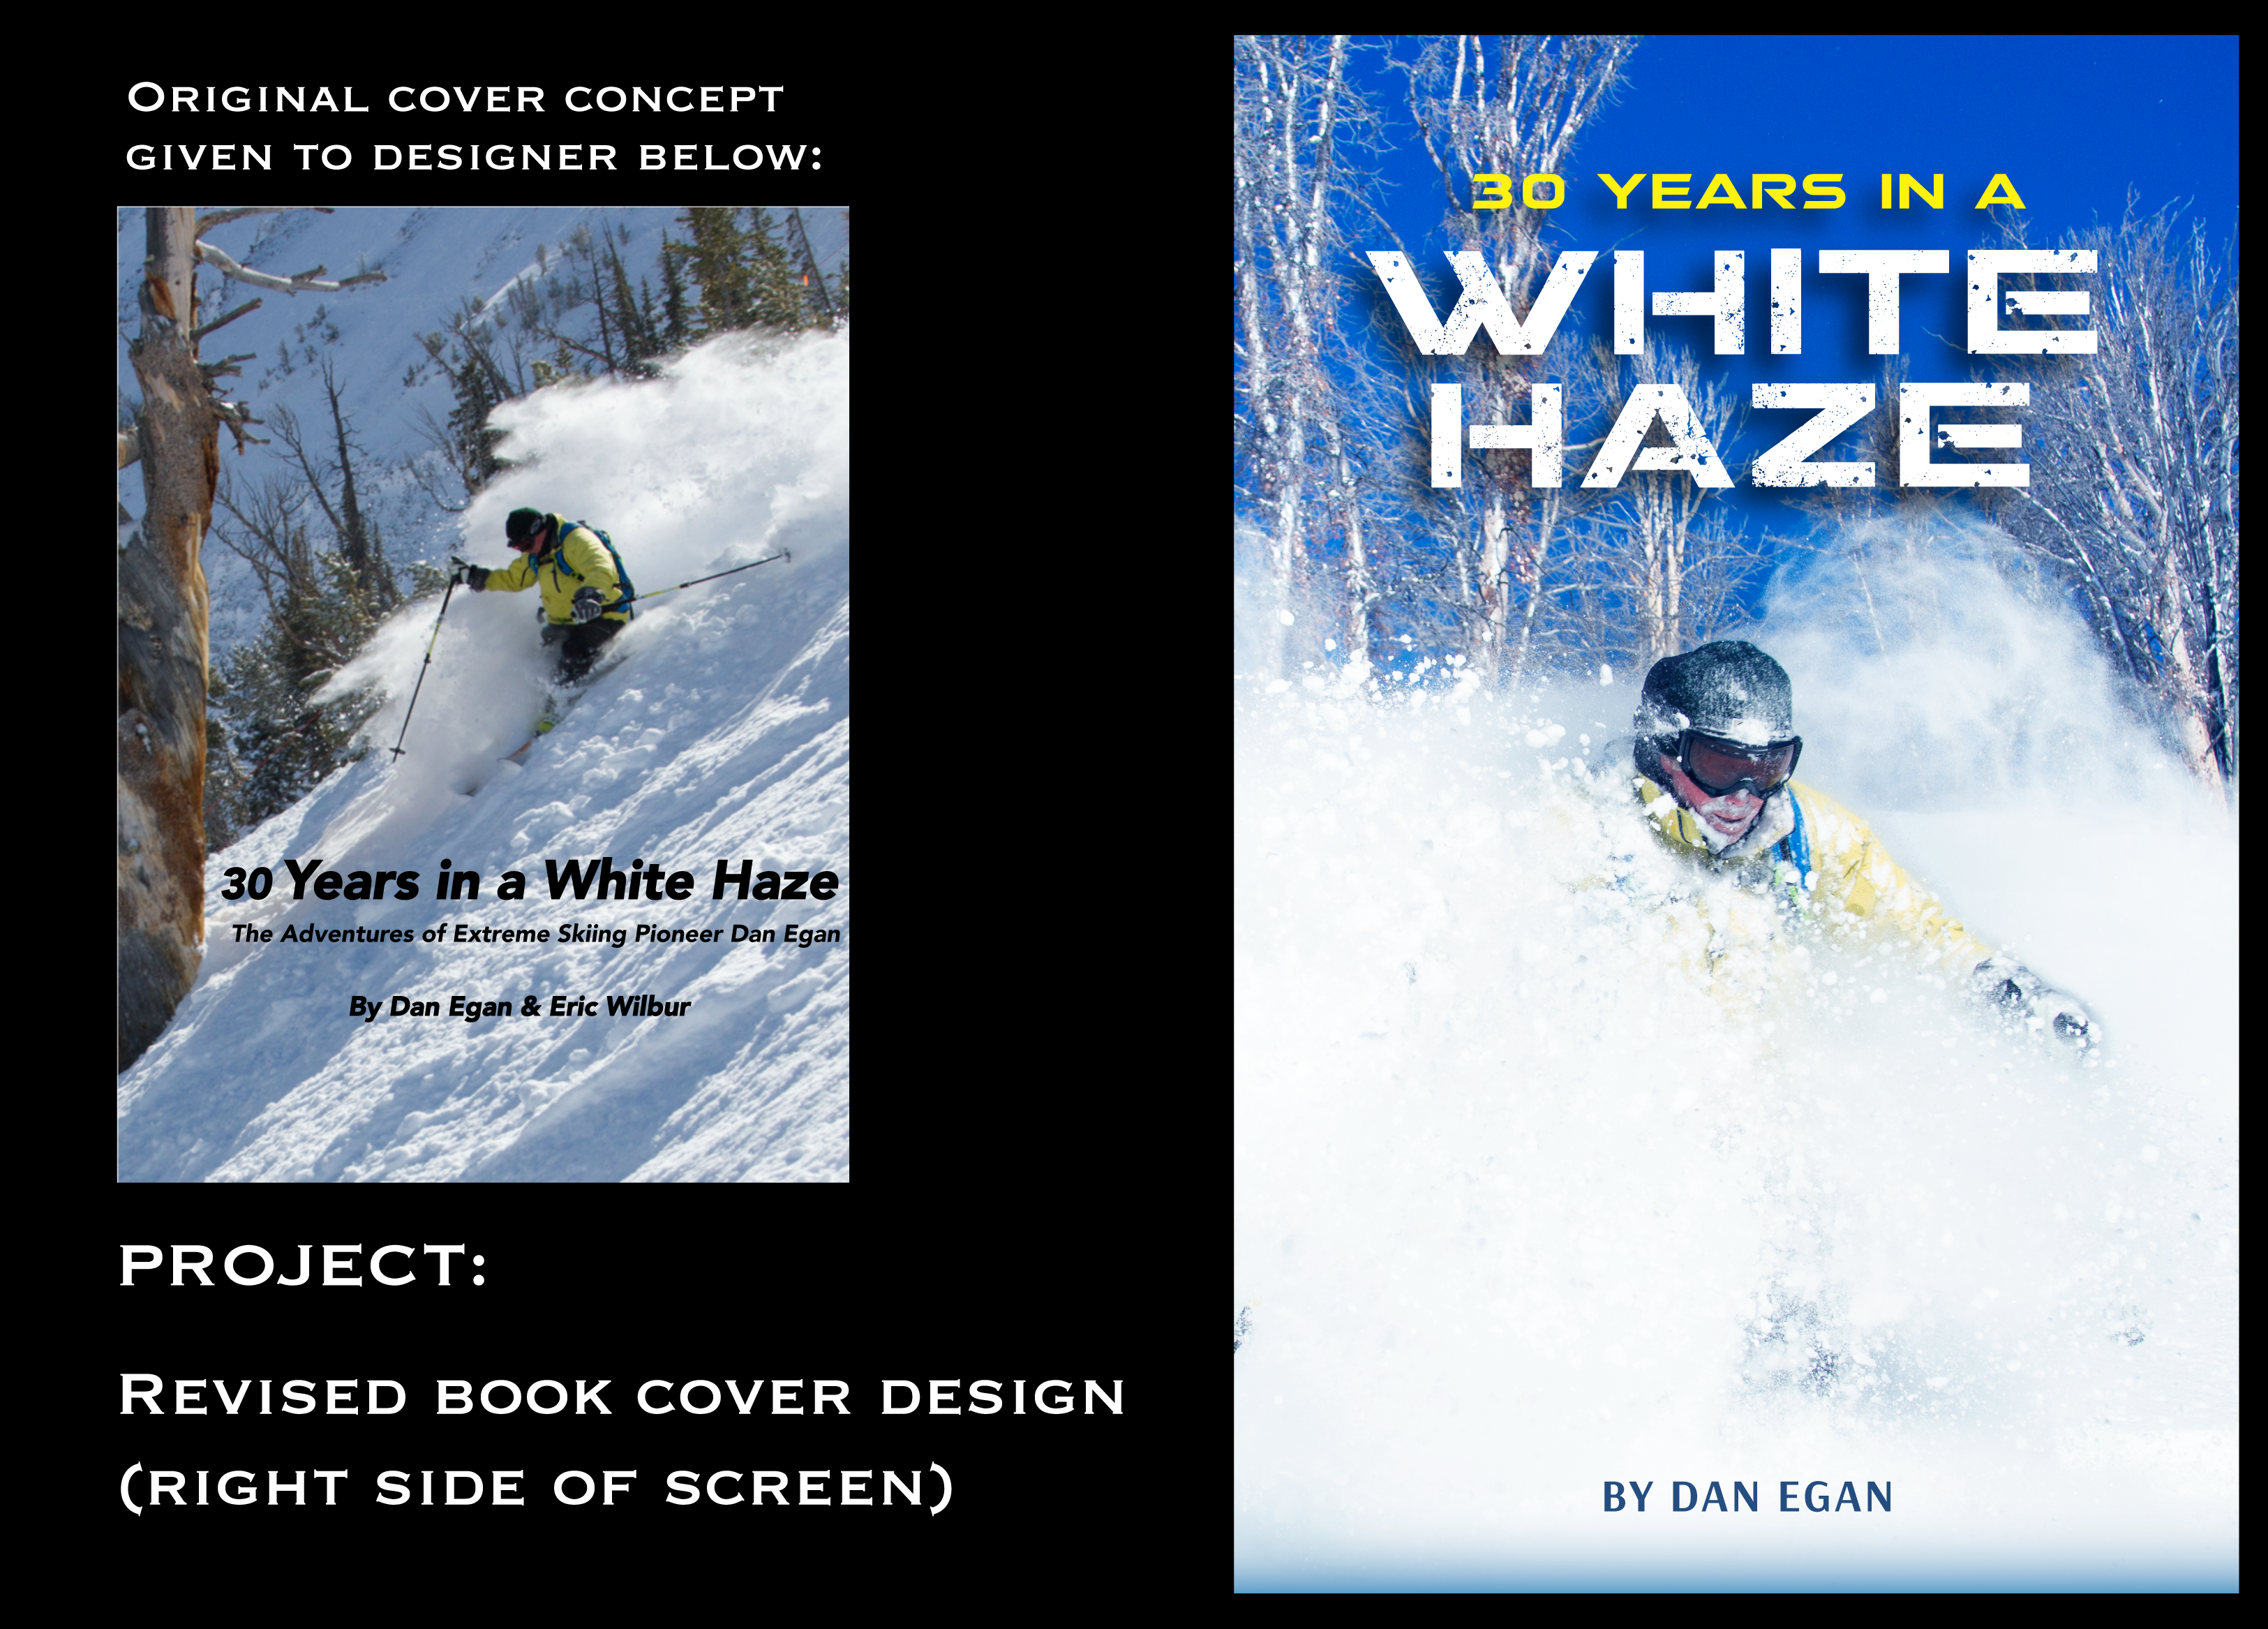 White Haze book cover redesign